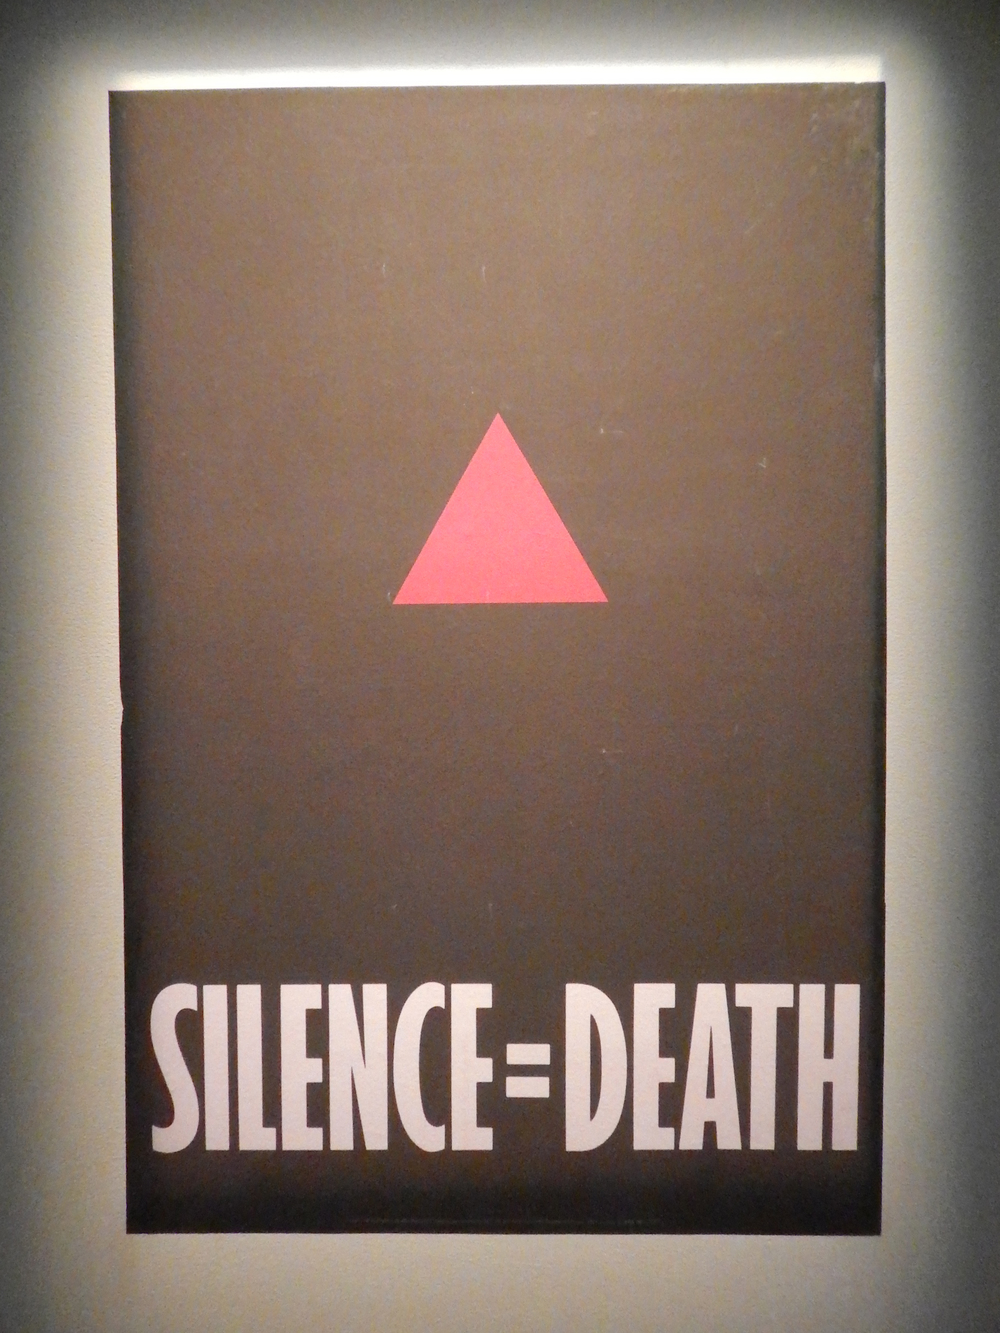 Zero Tolerance: digital projection of ACT UP New York, SILENCE=DEATH (1987)